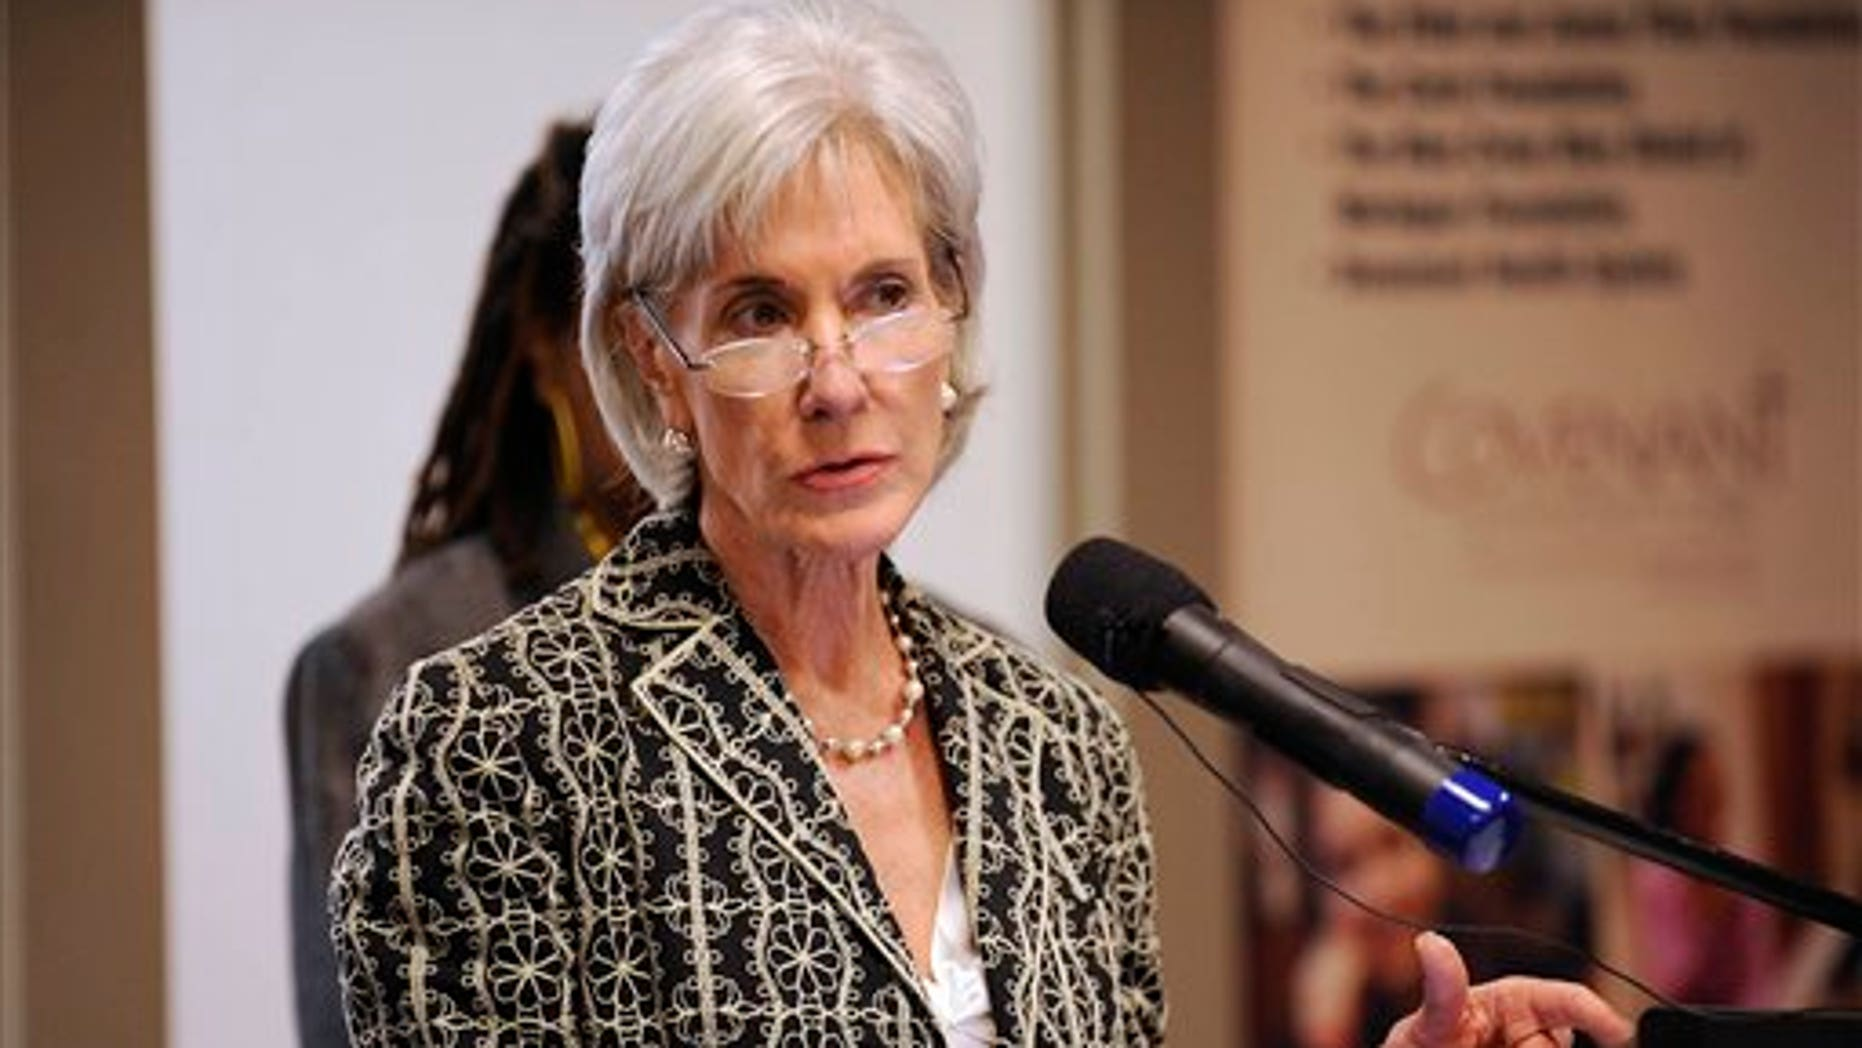 June 20: Health and Human Services Secretary Kathleen Sebelius makes an announcement about community health centers, at Covenant Community Care, Inc. in Detroit.